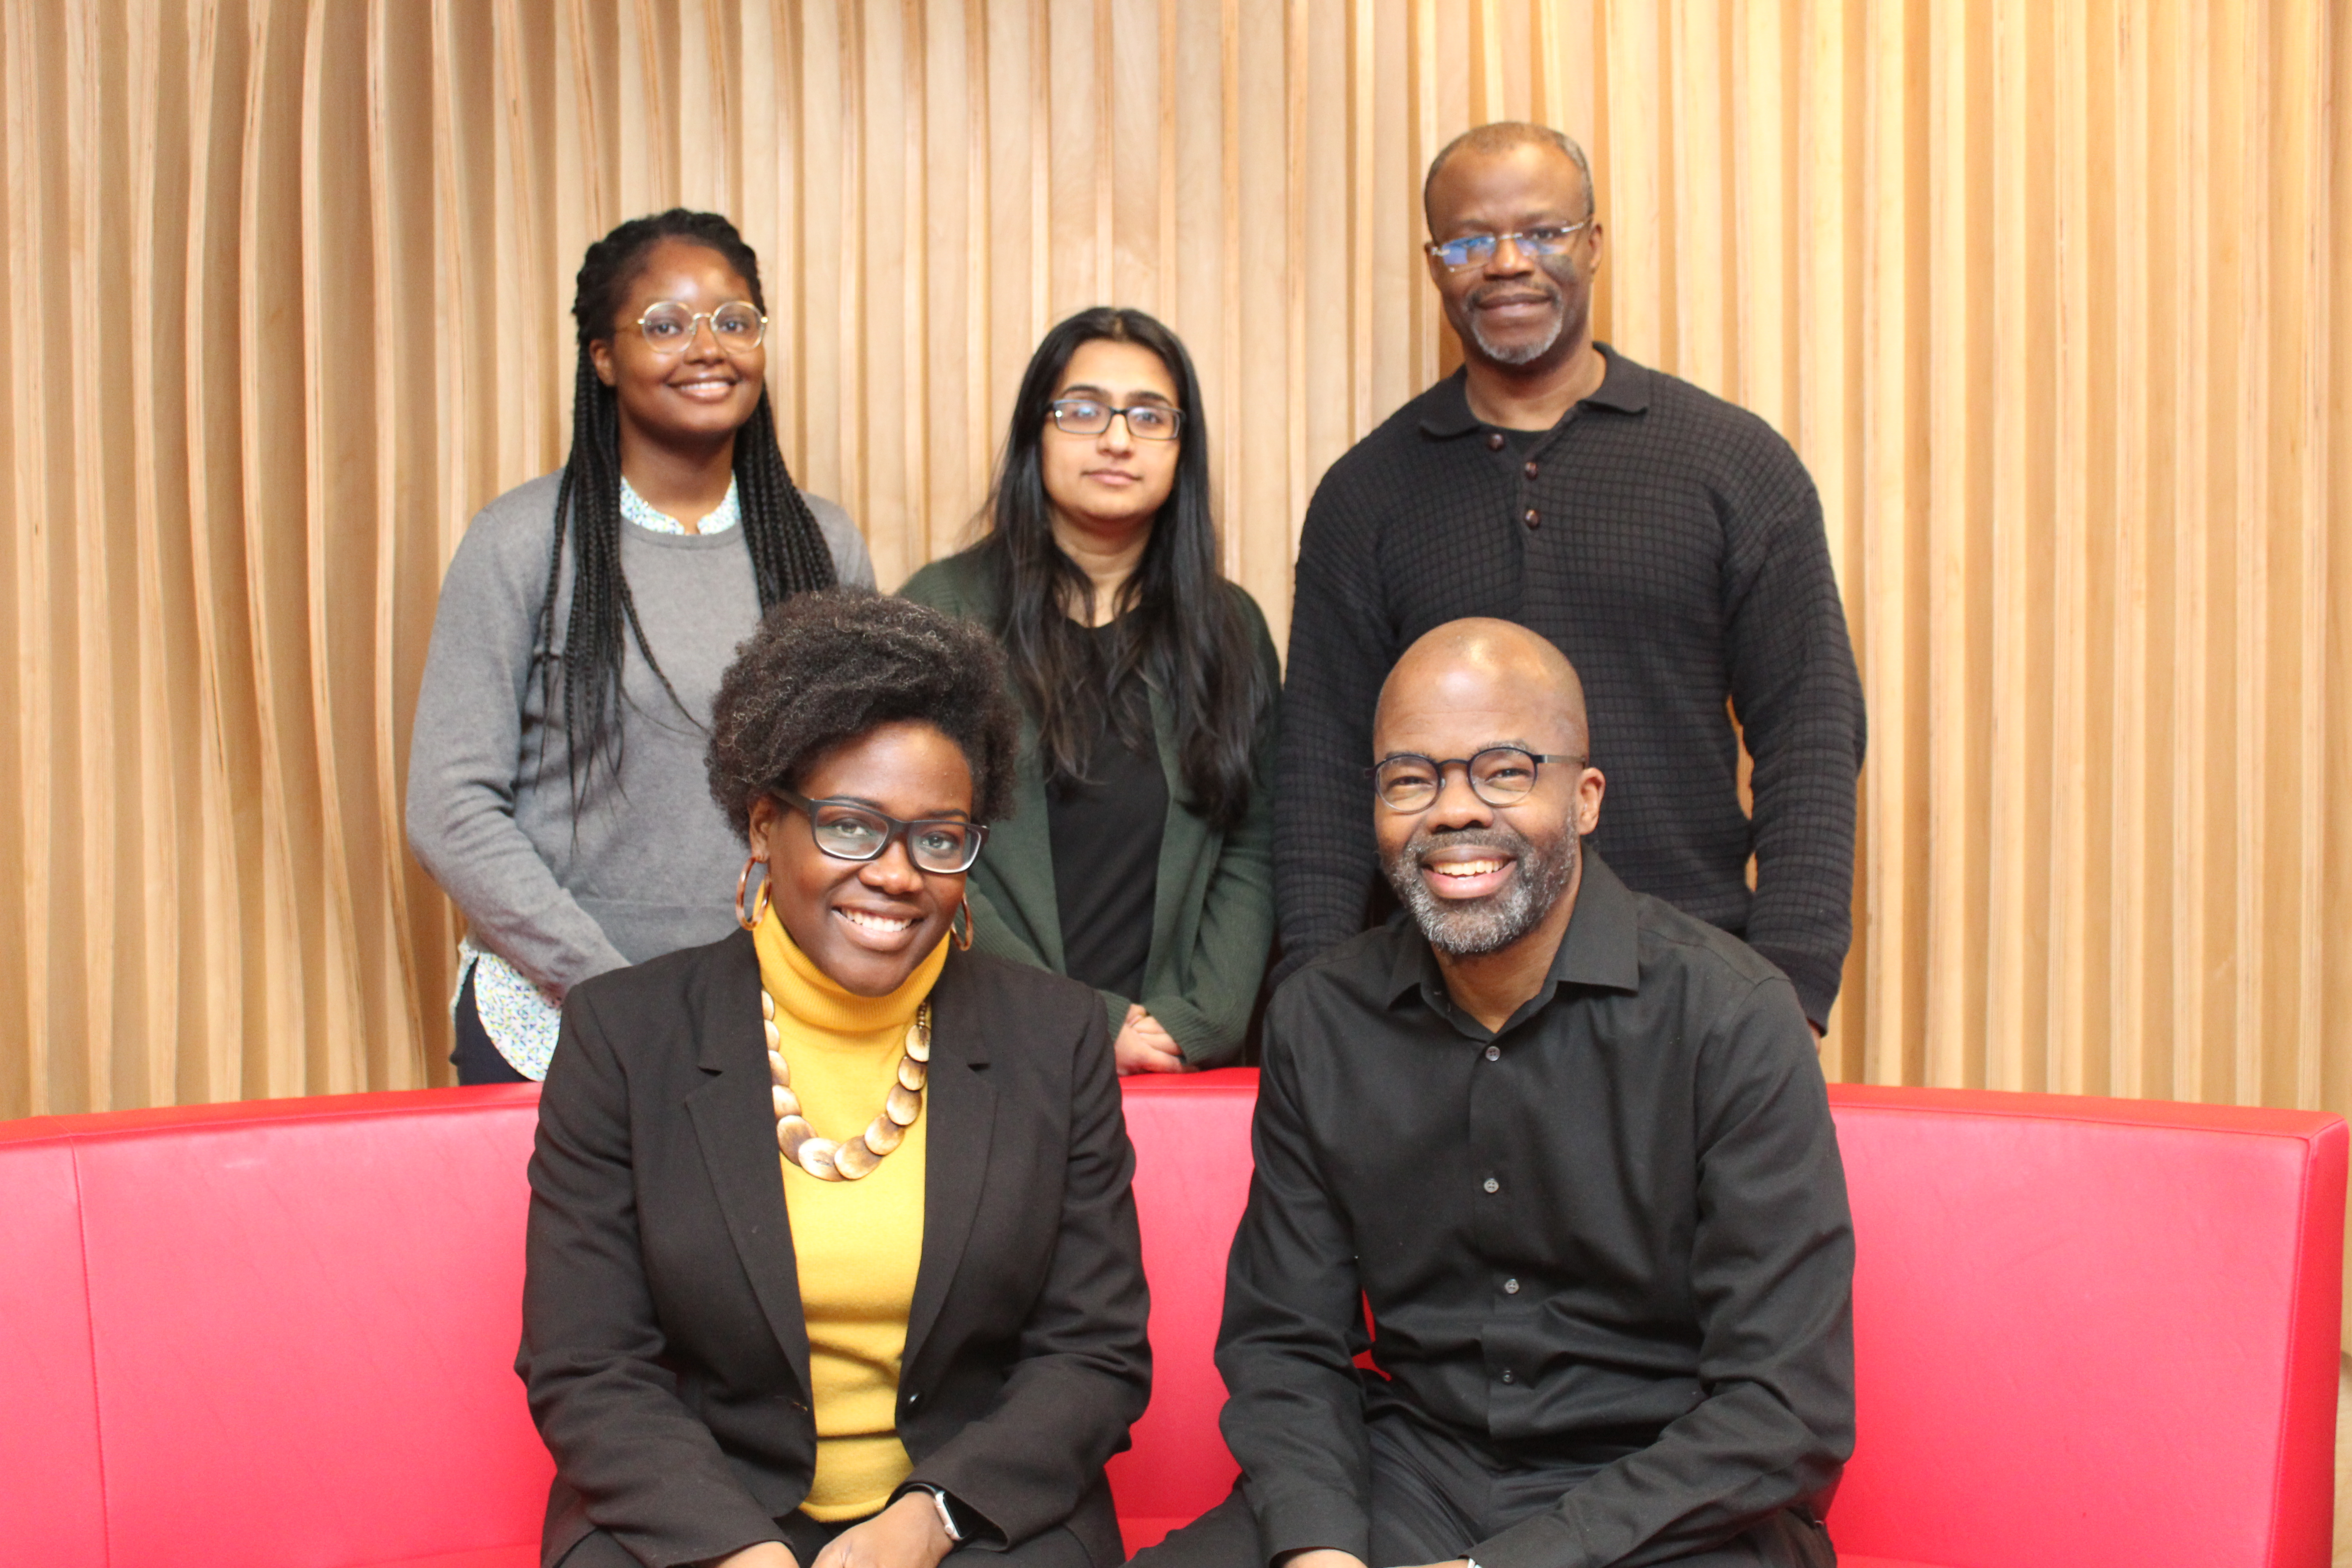 Professor Onye Nnorom (front left) and colleagues